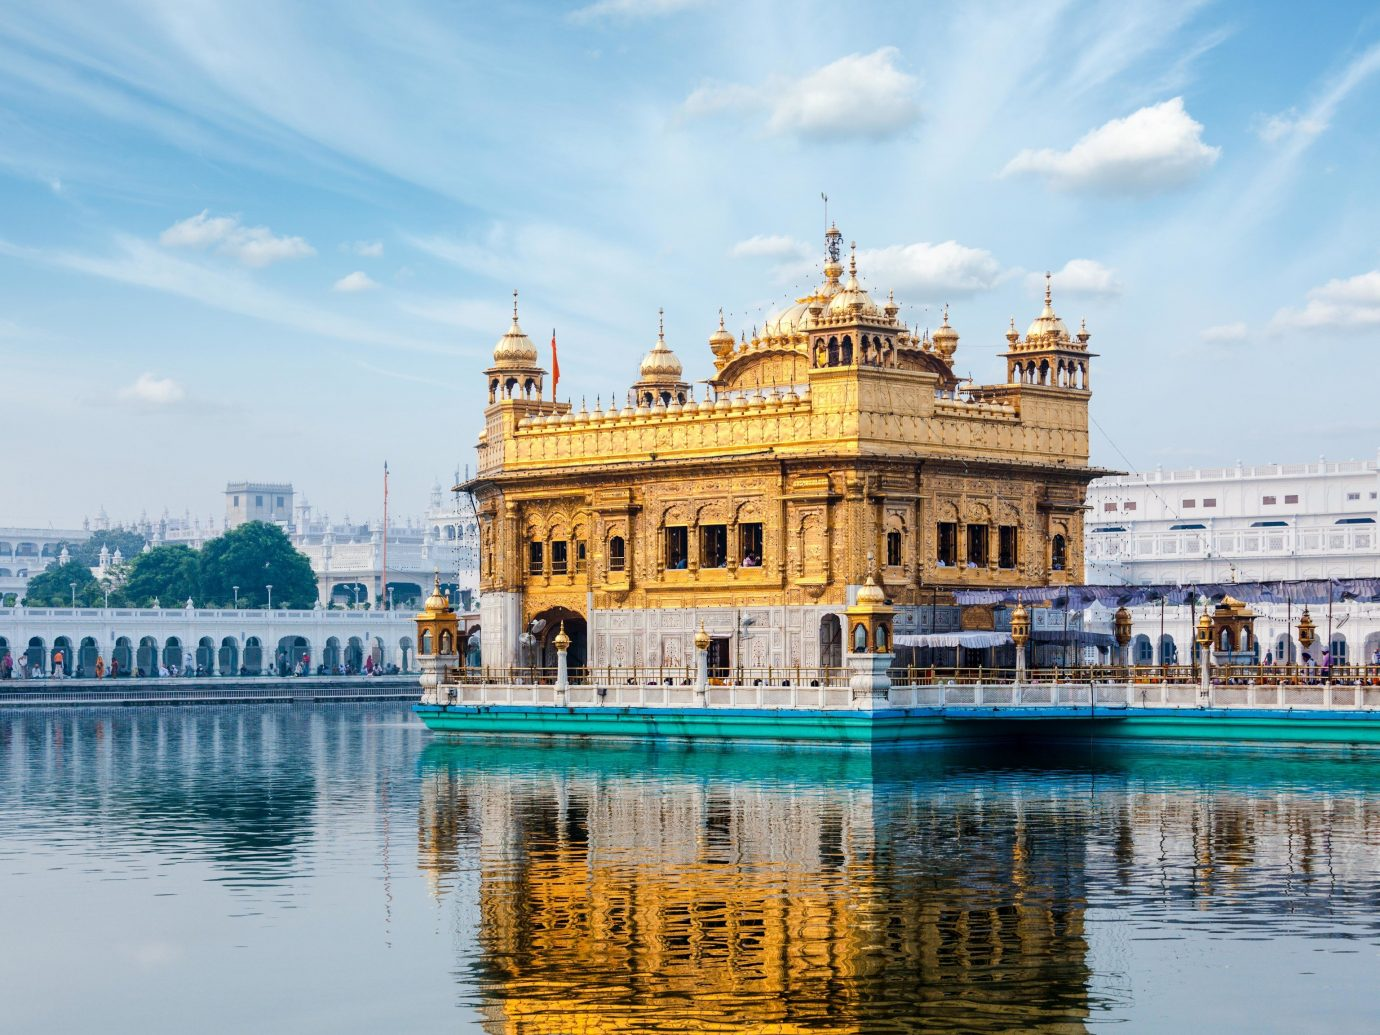 Travel Tips water outdoor water transportation reflection sky tourist attraction Sea palace building place of worship temple tourism hindu temple calm